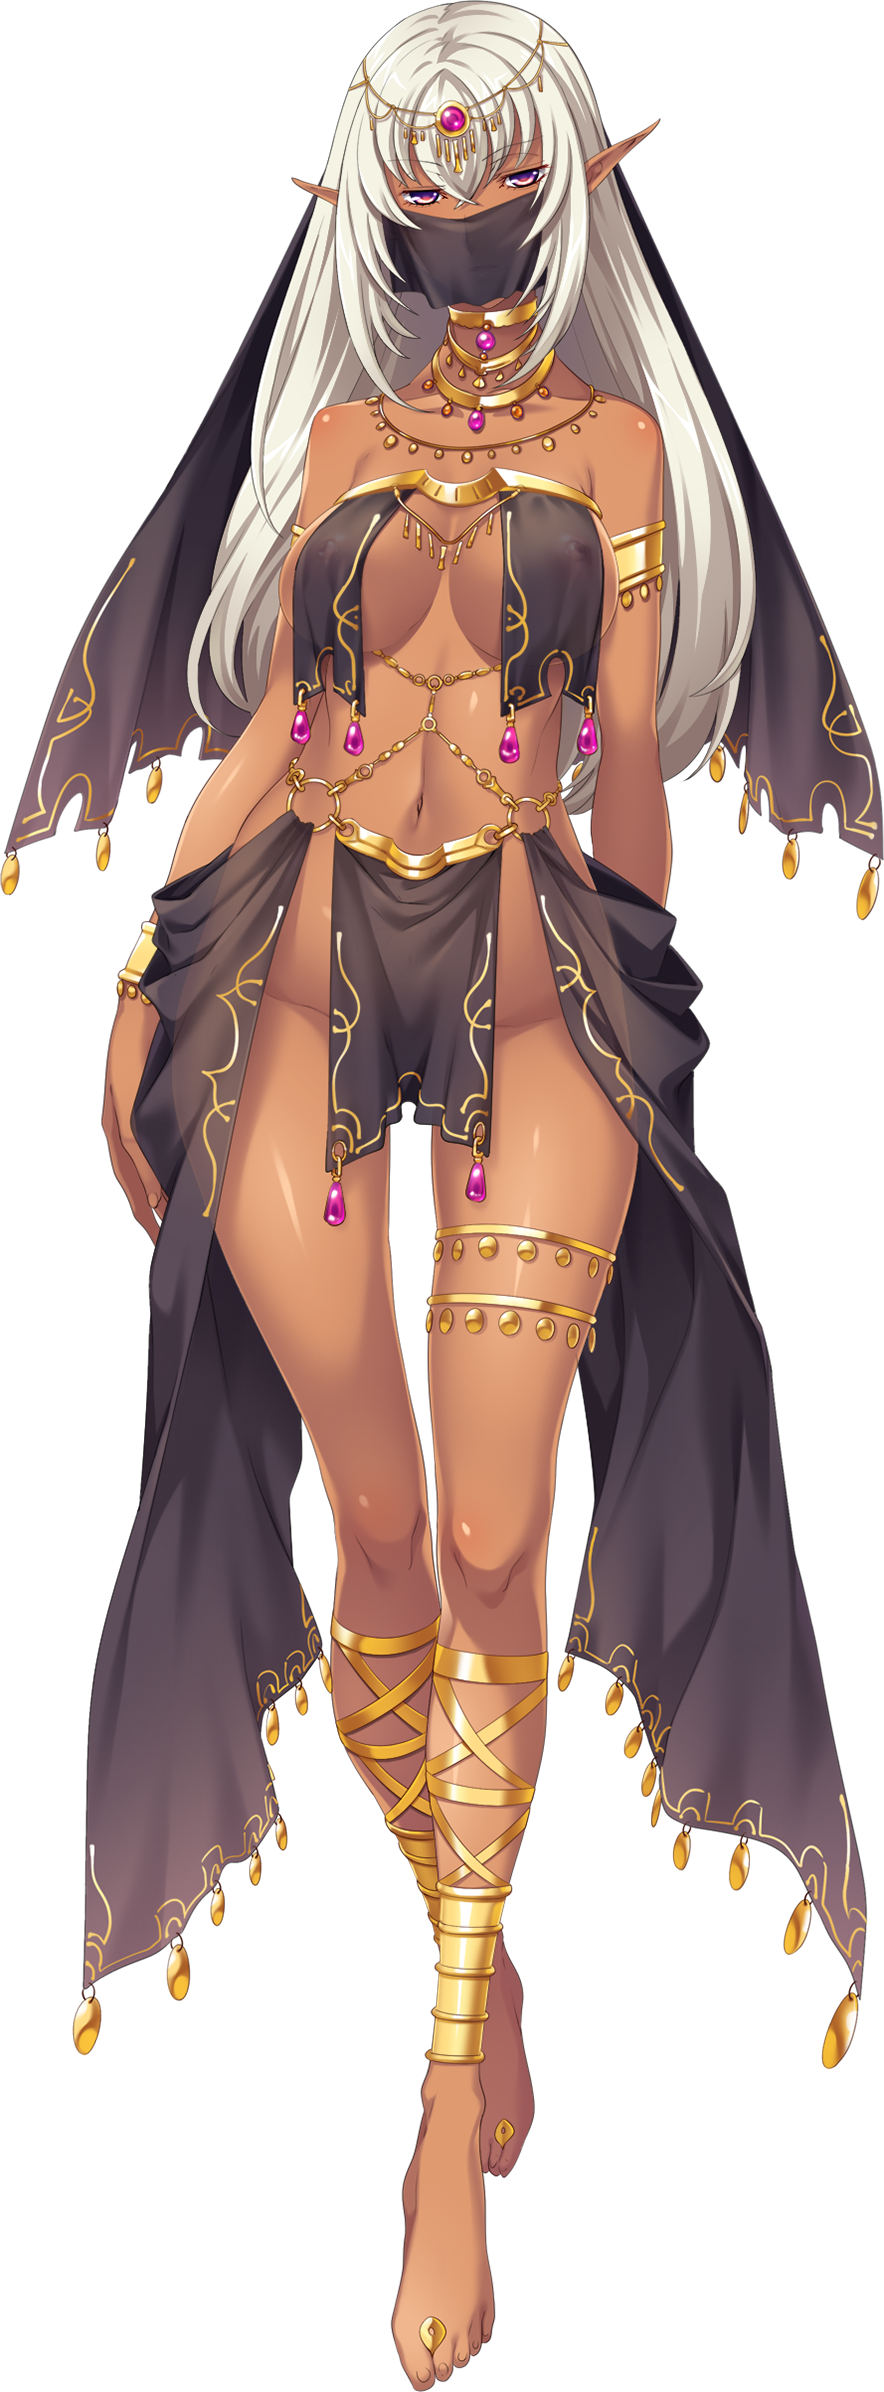 1girl armlet bangs bracelet covered_nipples crossed_bangs dark_skin eyebrows_visible_through_hair full_body highres hikage_eiji jewelry kuroinu_2 long_hair mistiora_arte navel neck_ring nipples o-ring official_art pelvic_curtain pink_eyes pointy_ears revealing_clothes see-through solo thigh_strap transparent_background white_hair